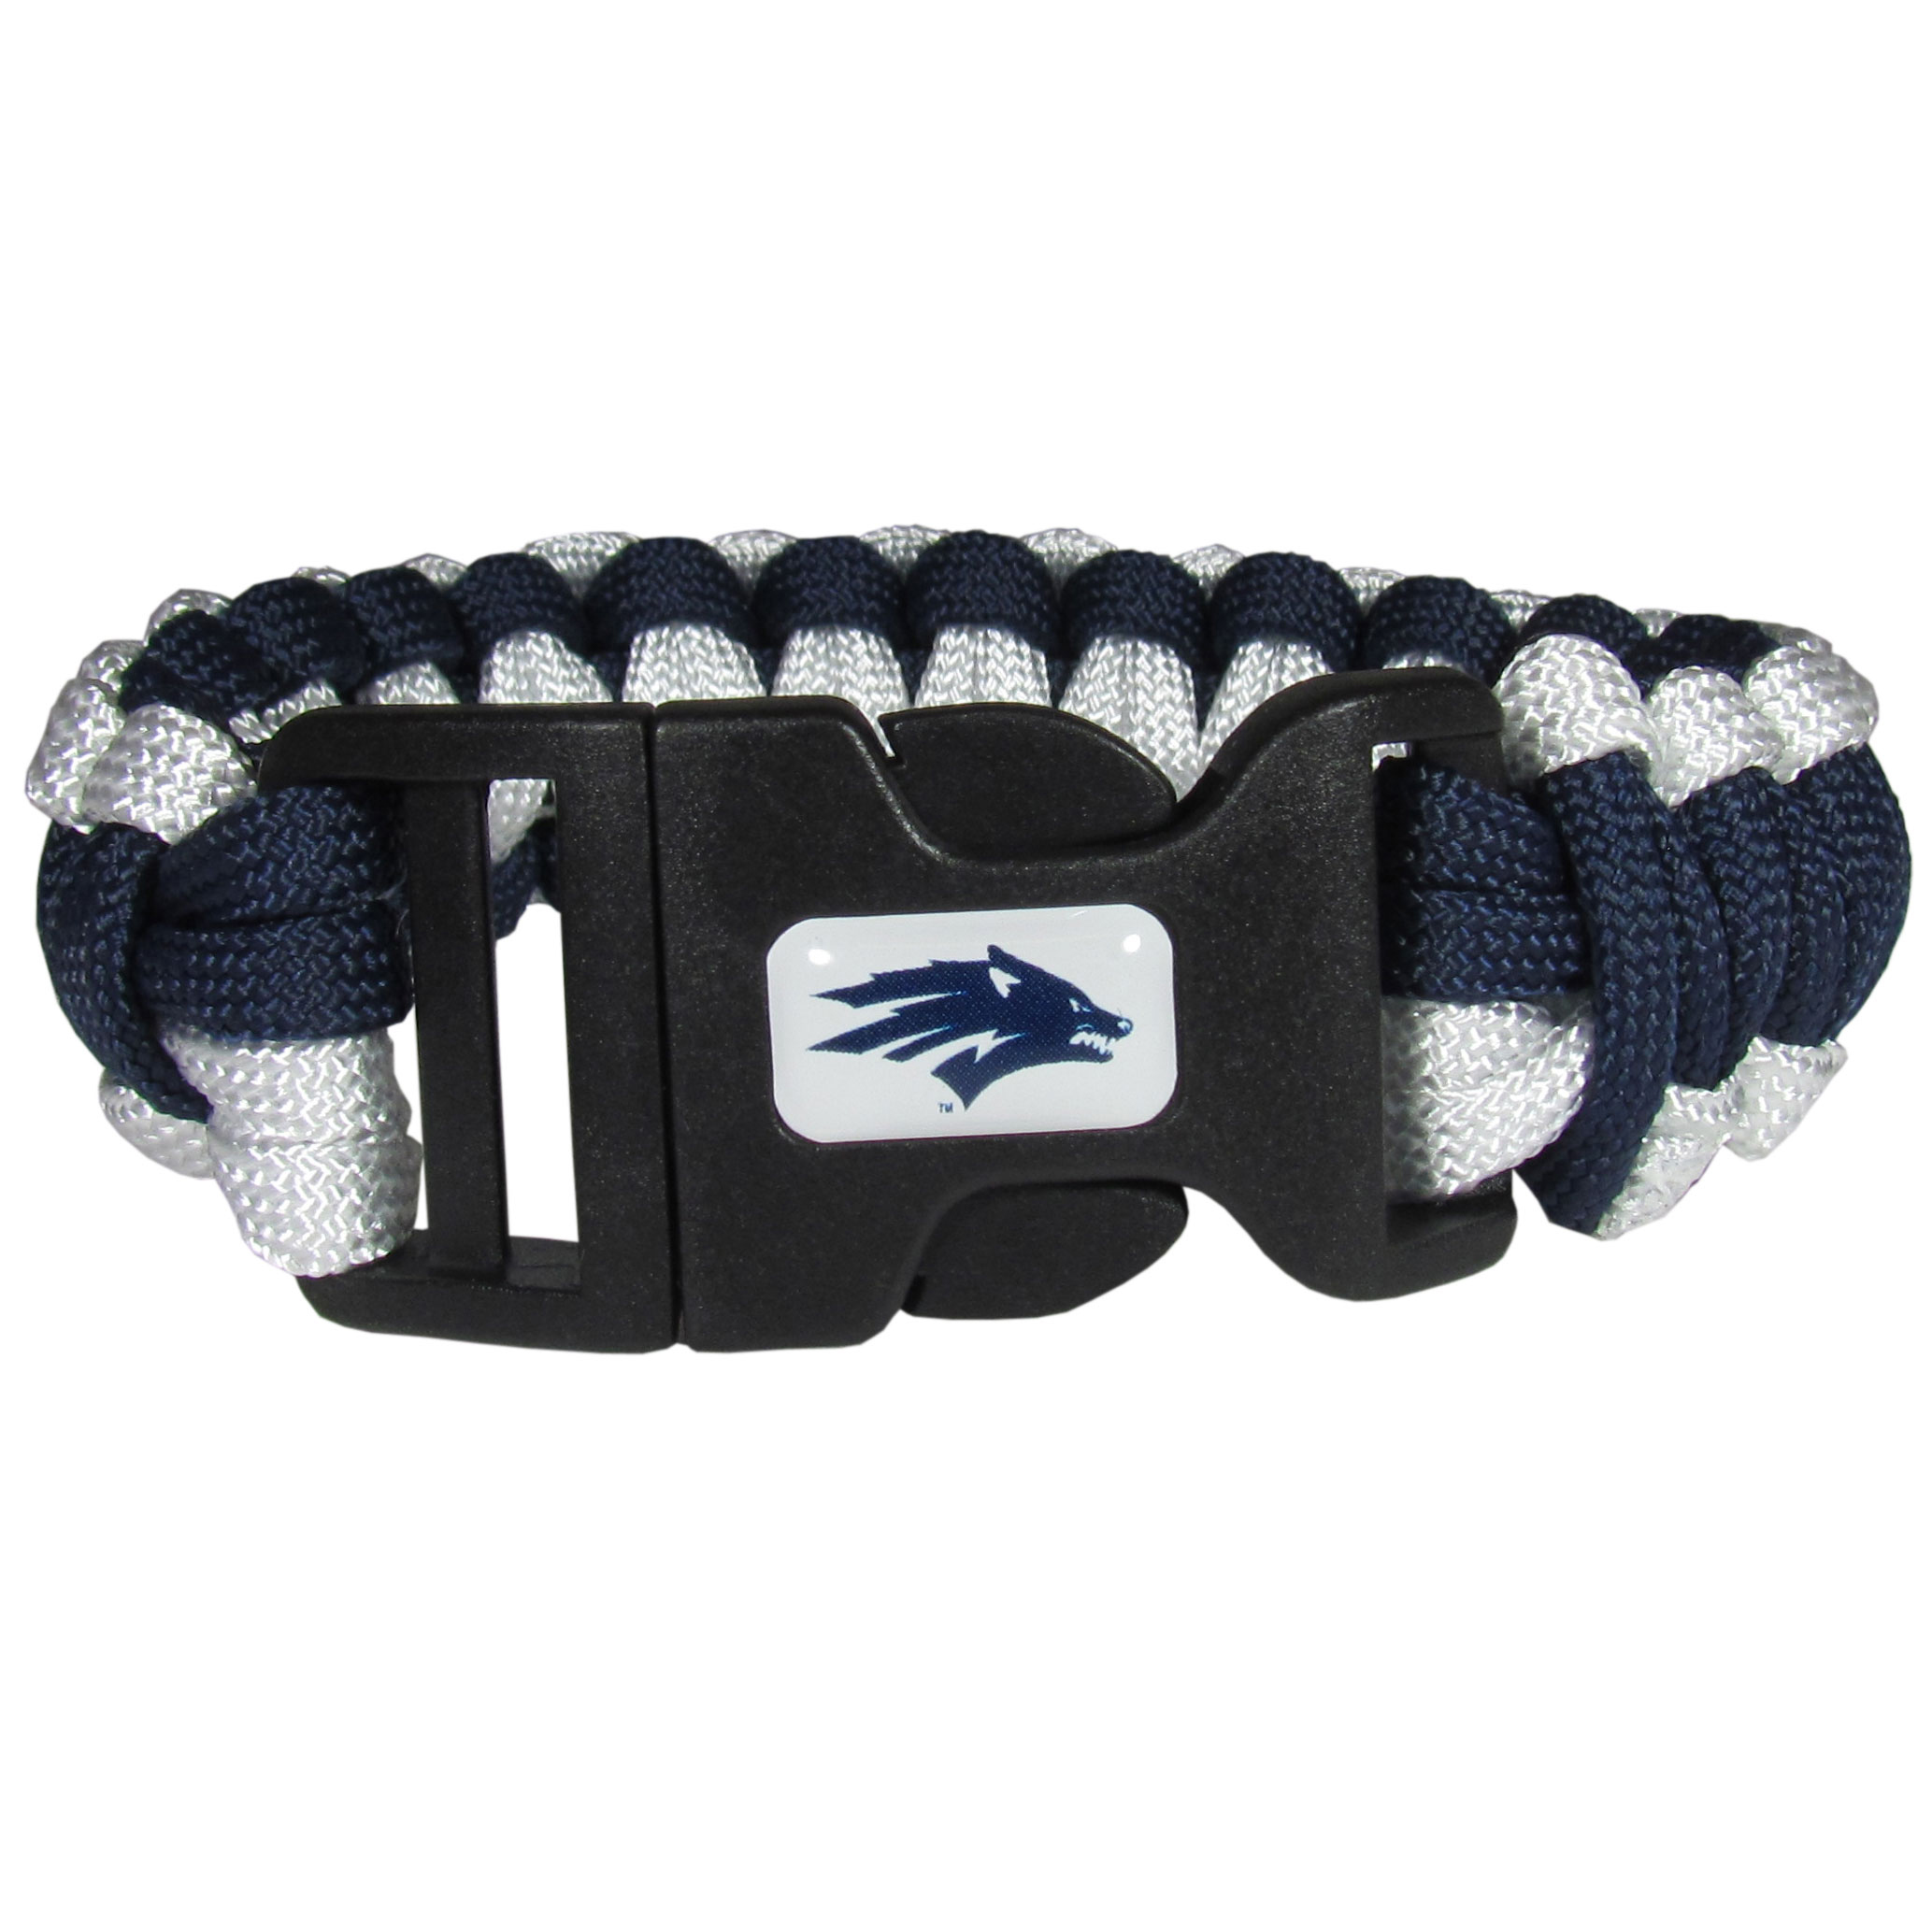 Nevada Wolf pack Survivor Bracelet - This functional and fashionable Nevada Wolf pack survivor bracelets contain 2 individual 300lb test paracord rated cords that are each 5 feet long. The team colored cords can be pulled apart to be used in any number of emergencies and look great while worn. The bracelet features a team emblem on the clasp.